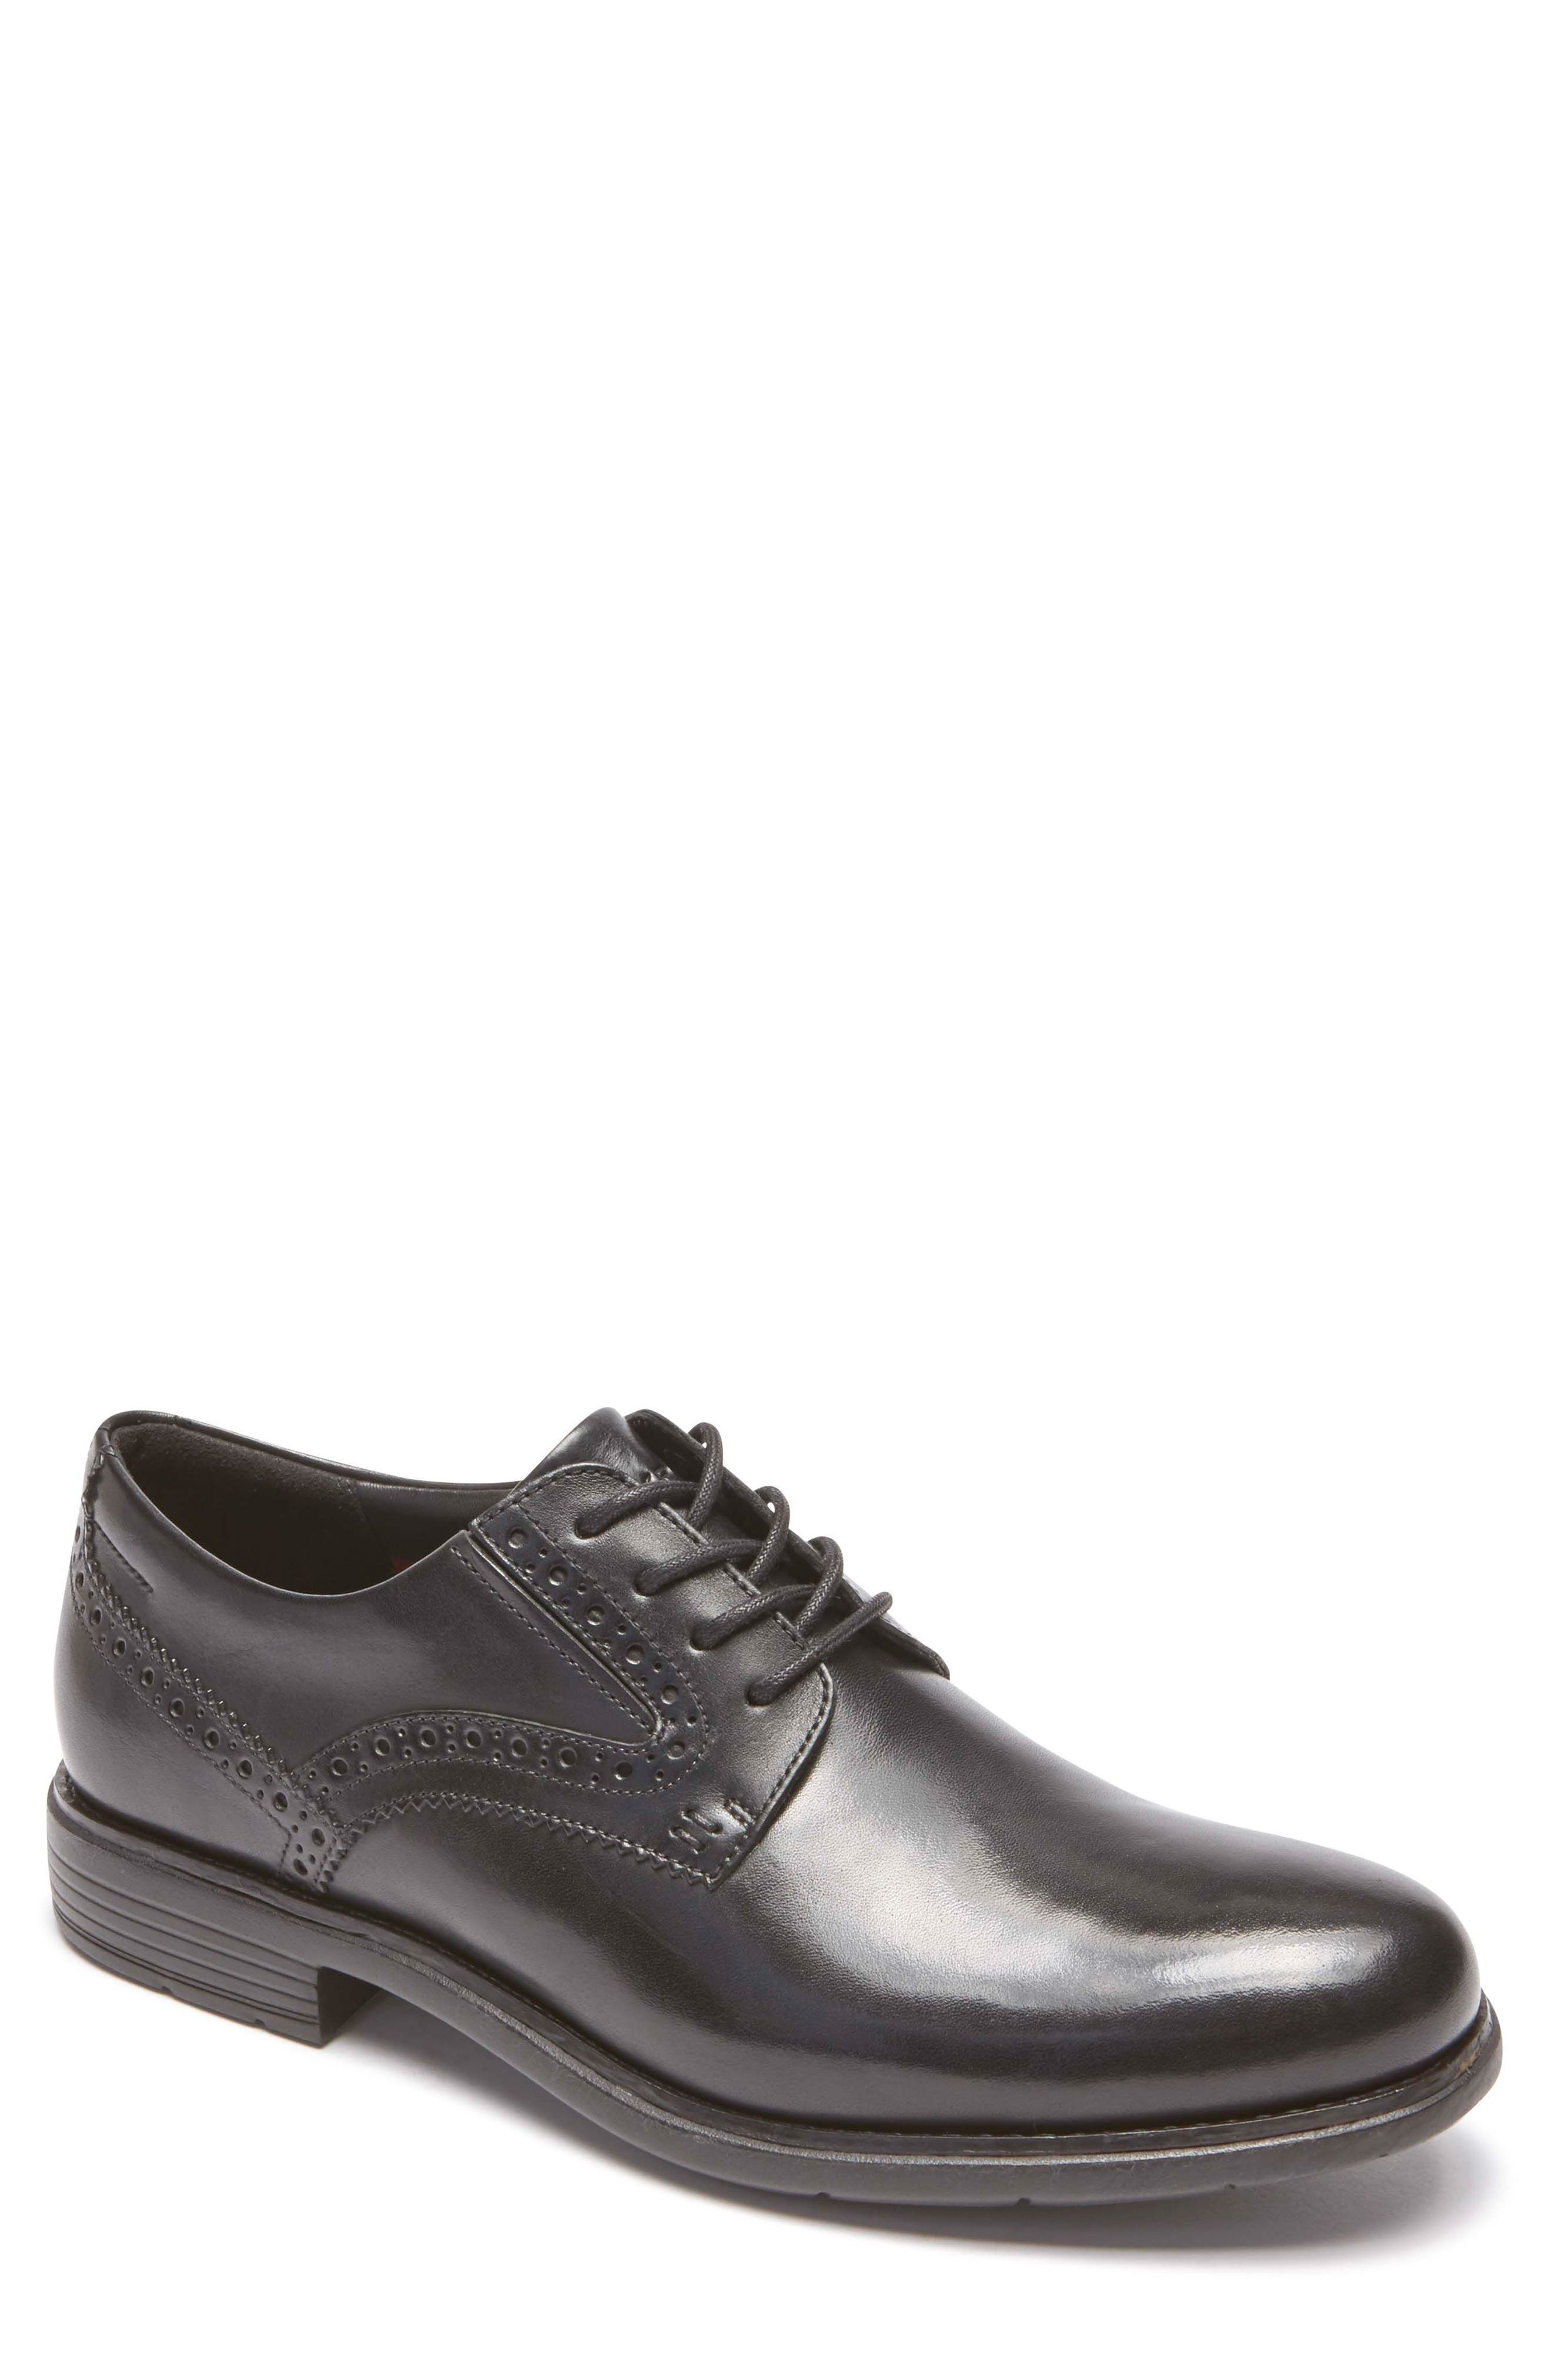 Total Motion Classic Dress Plain Toe Derby,                         Main,                         color, Black Leather